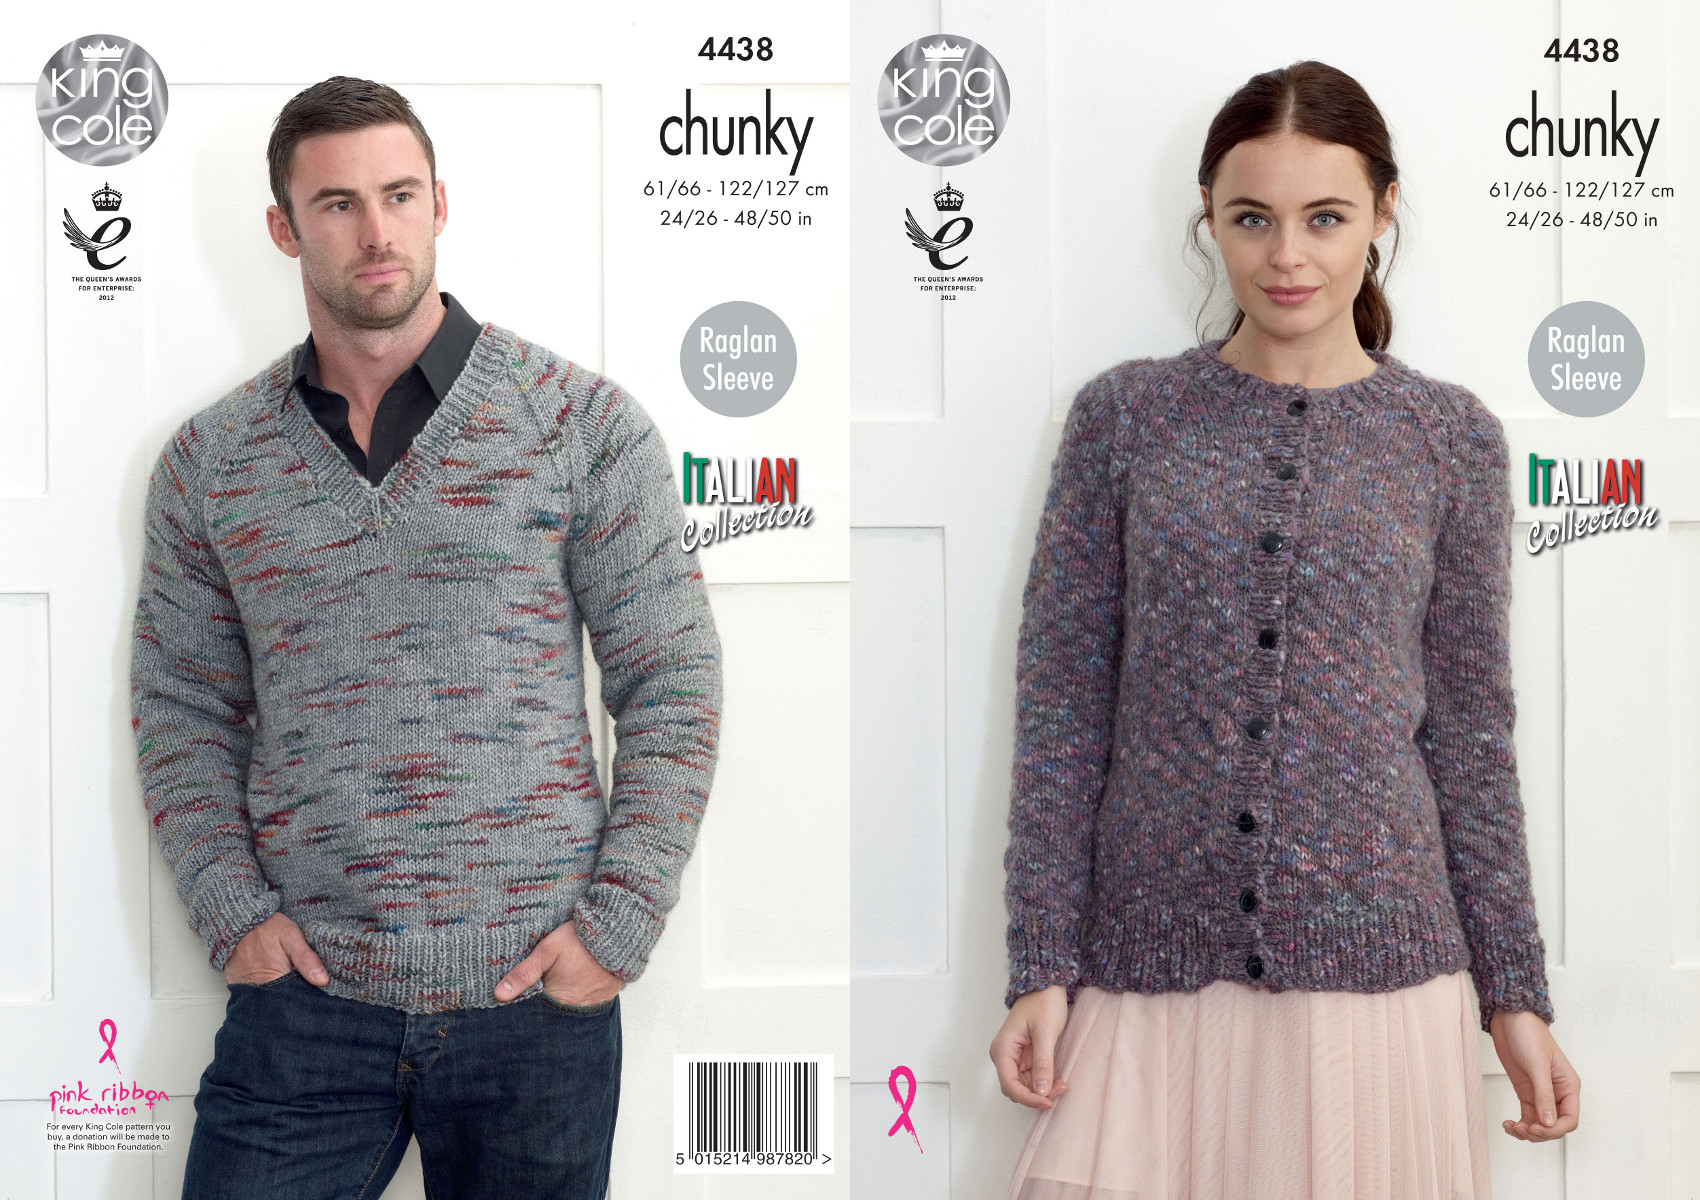 Womens Cardigan & Mens Sweater Knitting Pattern King Cole Verona ...